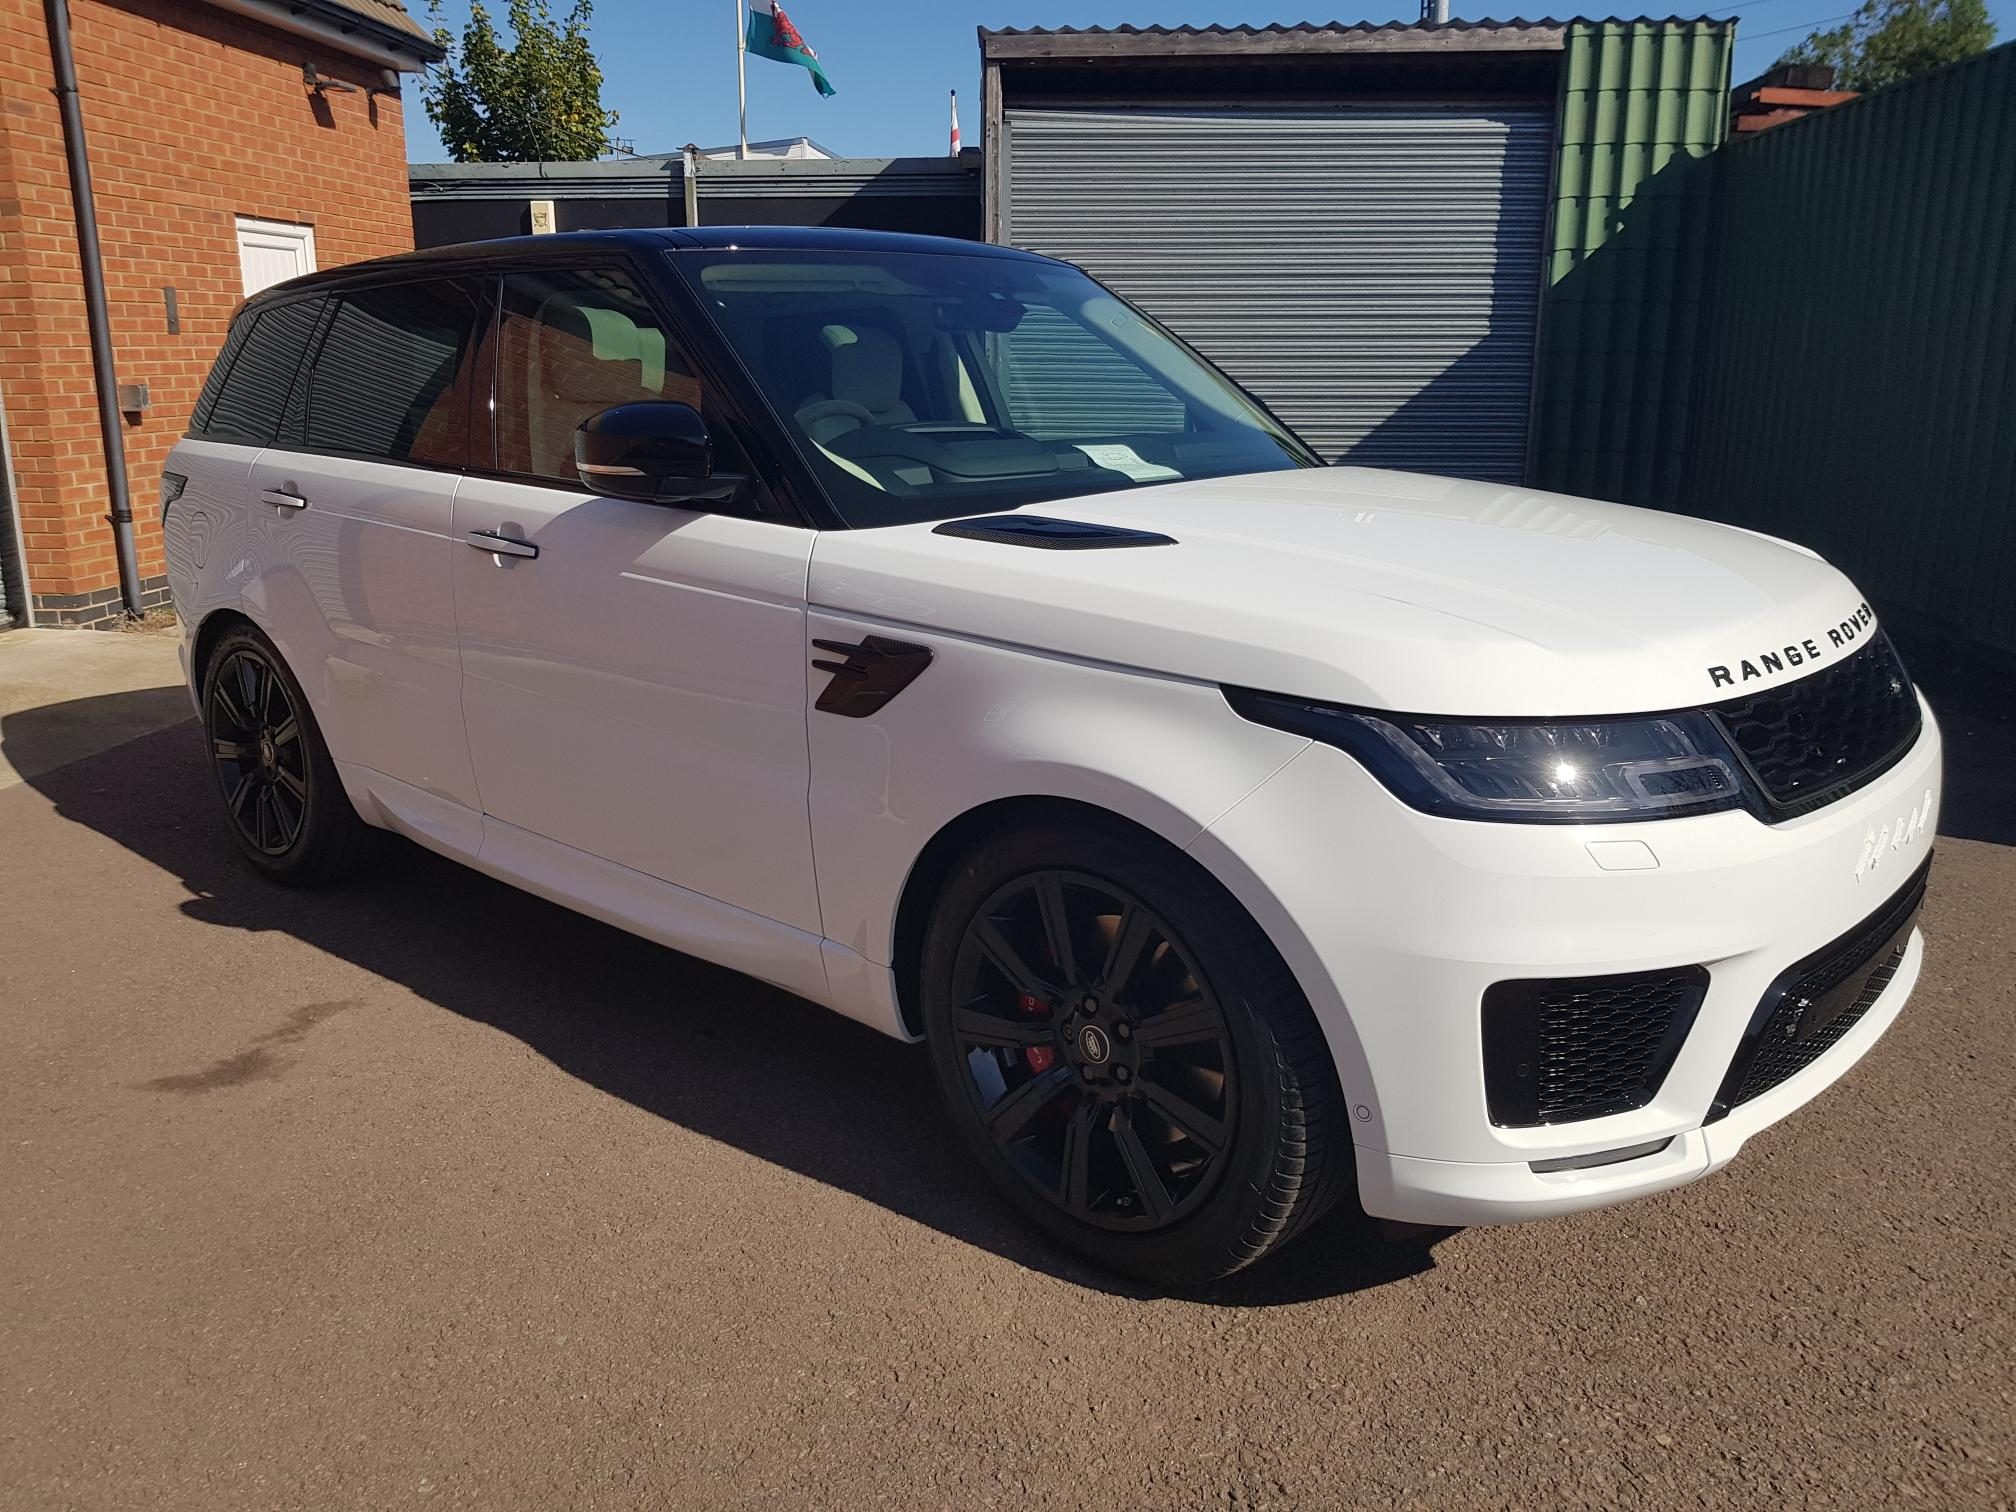 Range Rover Sport Range Rover Sport P400e Plug-in Hybrid Electric Vehicle 2